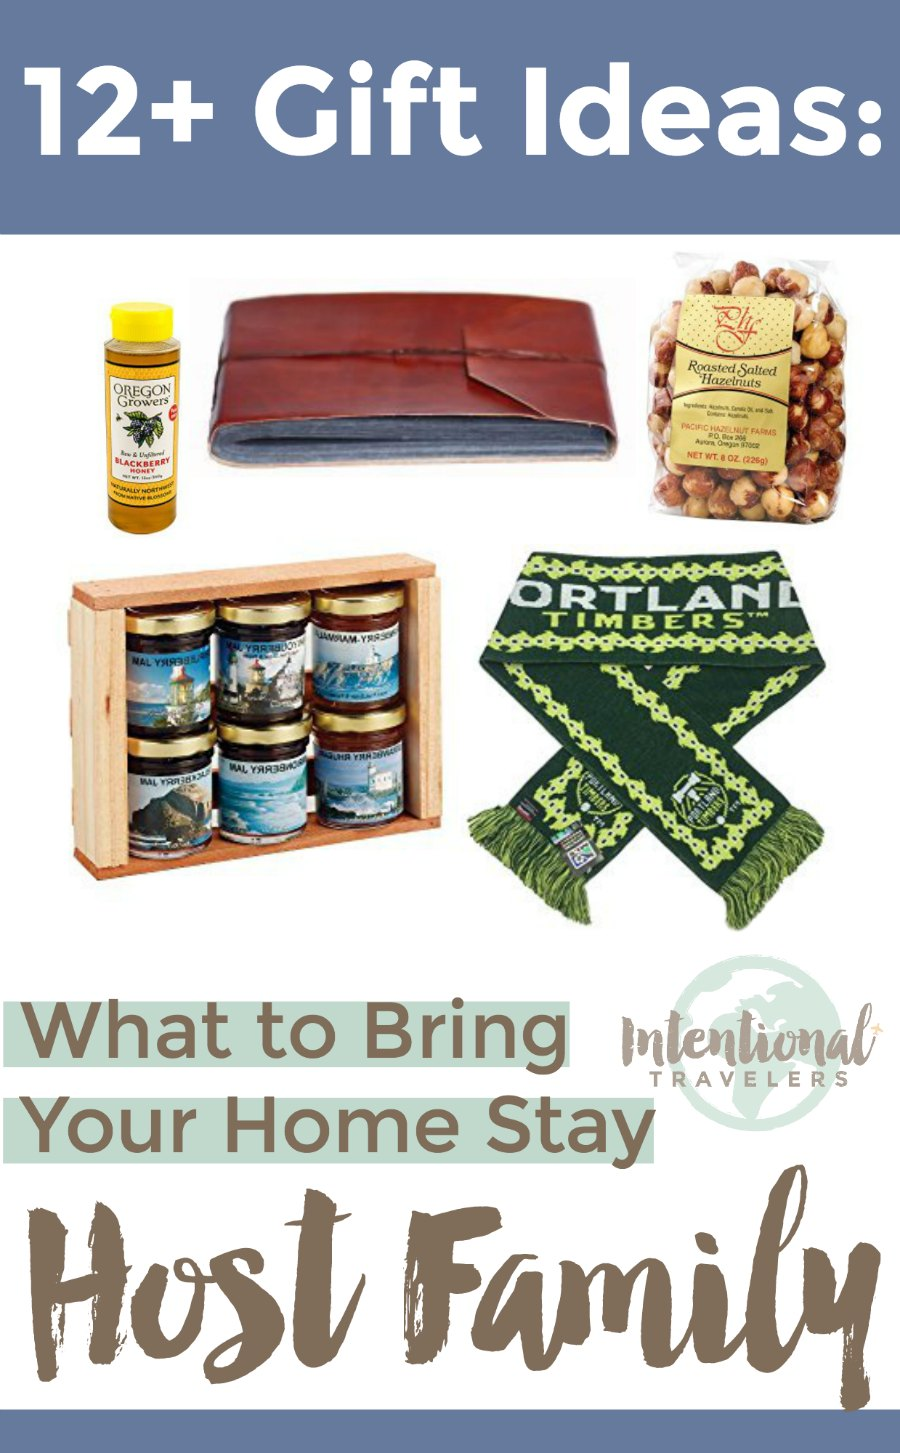 What to bring your host family 12 gift ideas intentional travelers tips and ideas for gifts to give to homestay host families abroad intentional travelers negle Choice Image